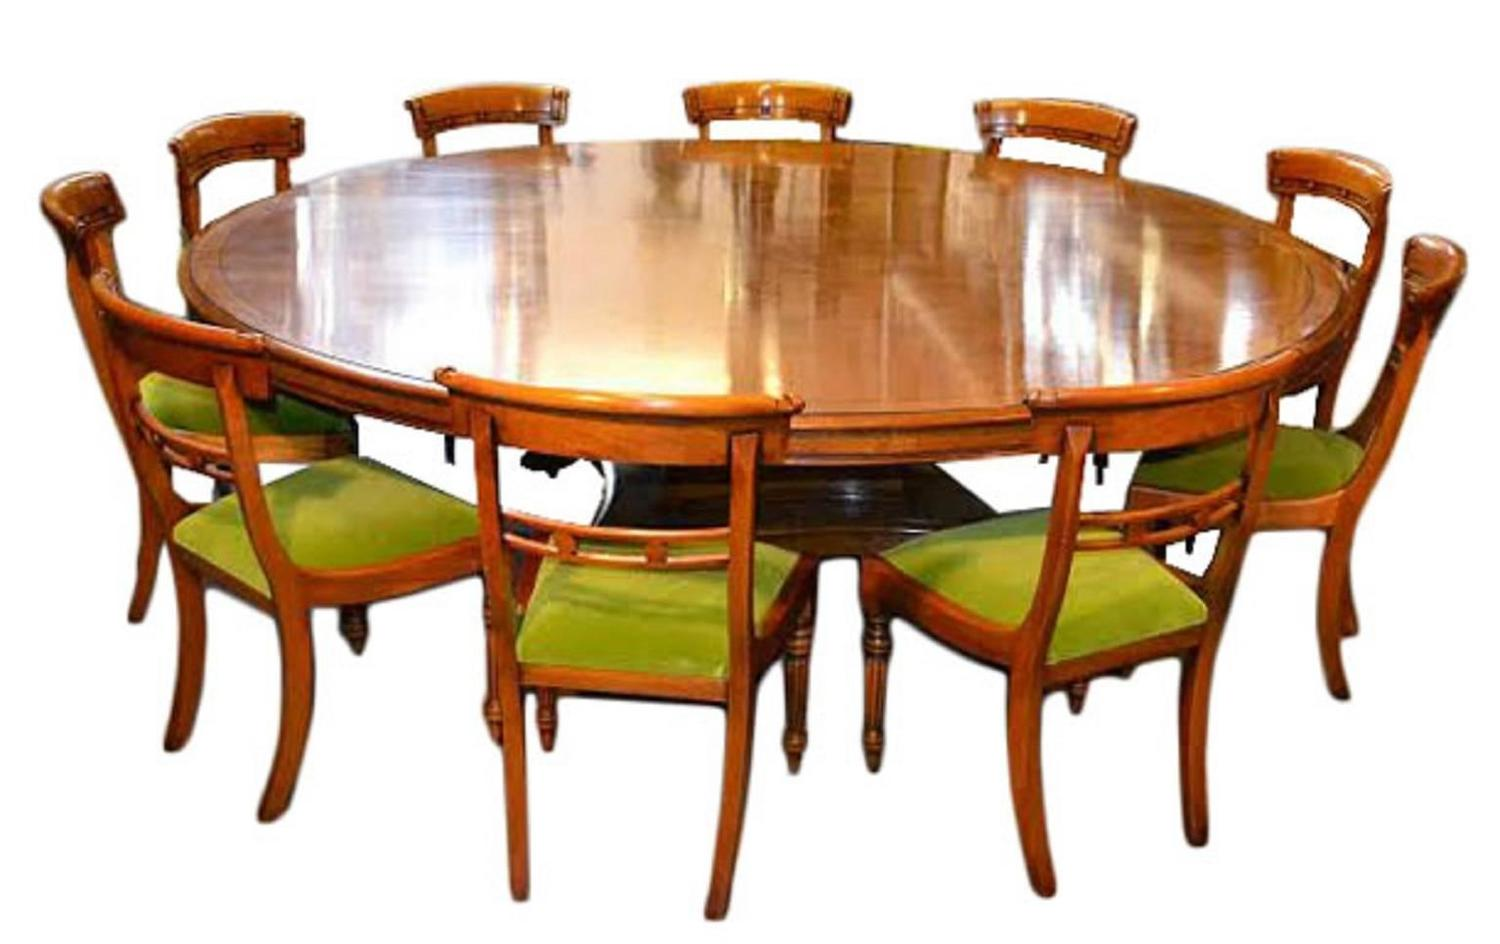 Vintage regency round pollard oak dining table for sale at Round dinner table for 10